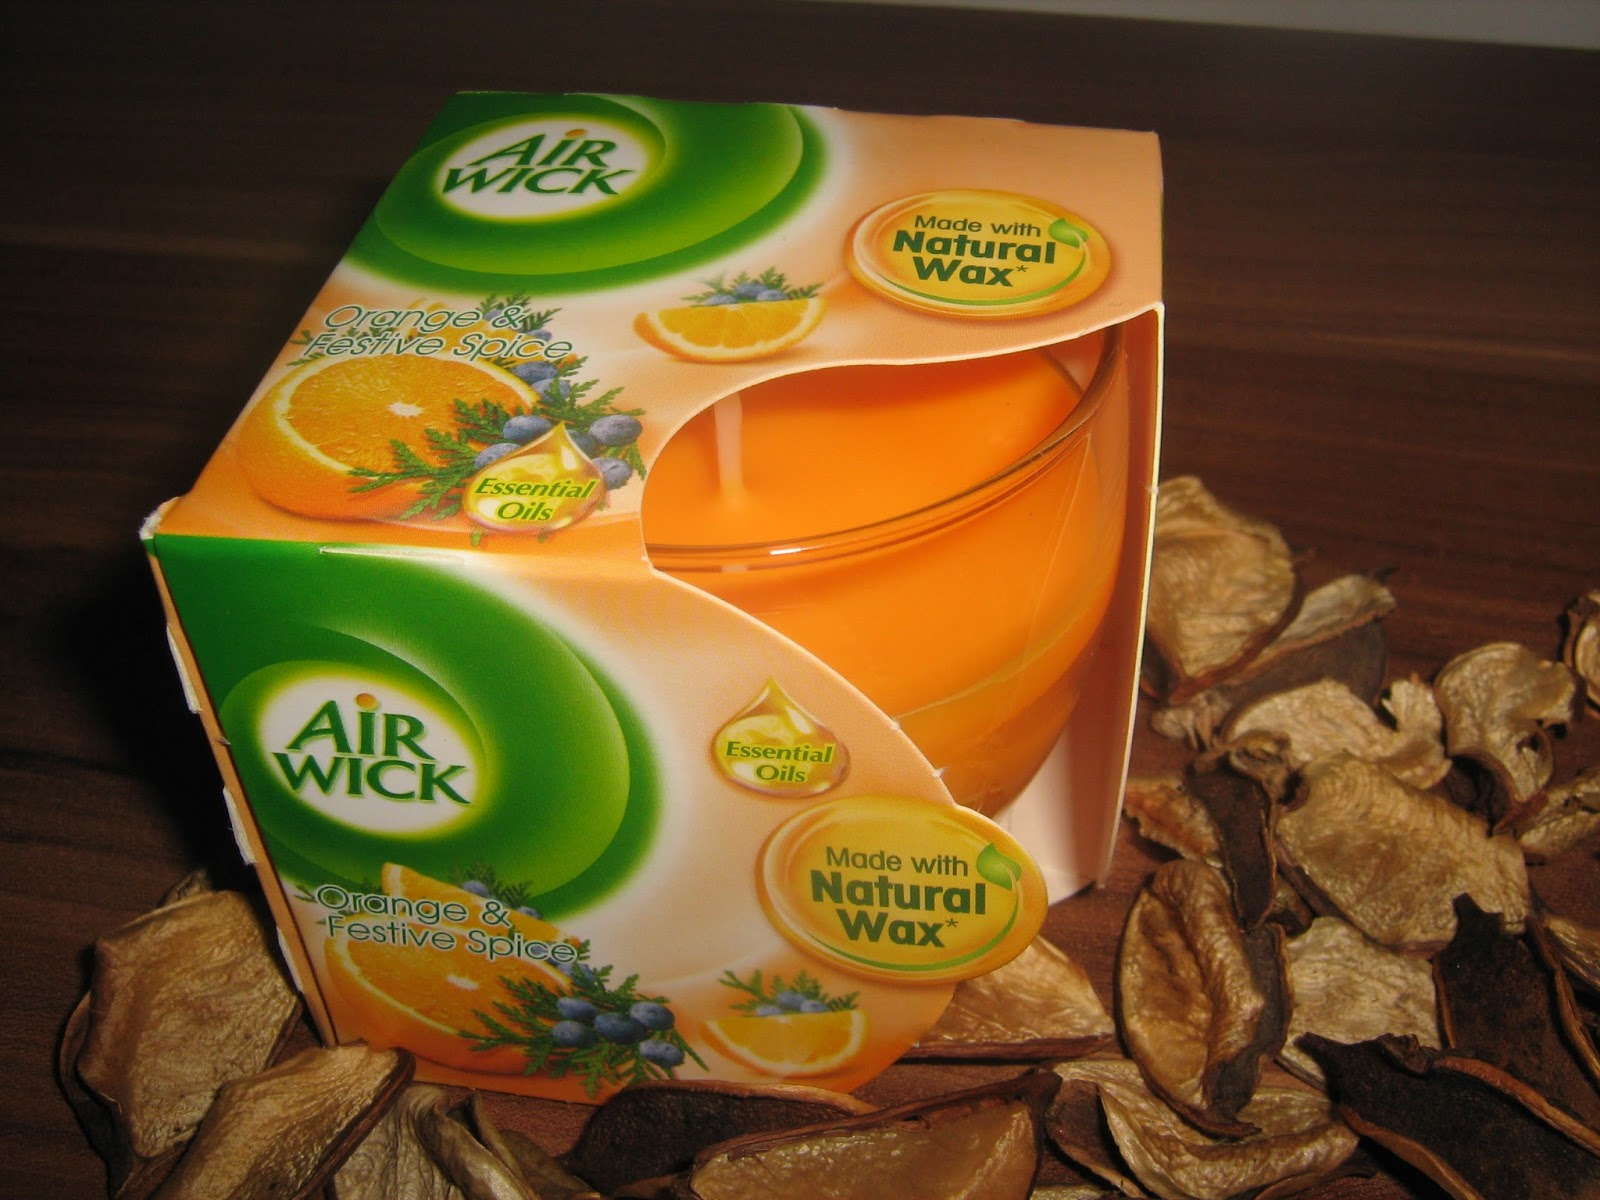 Air Wick świeca Orange & Festive Spice